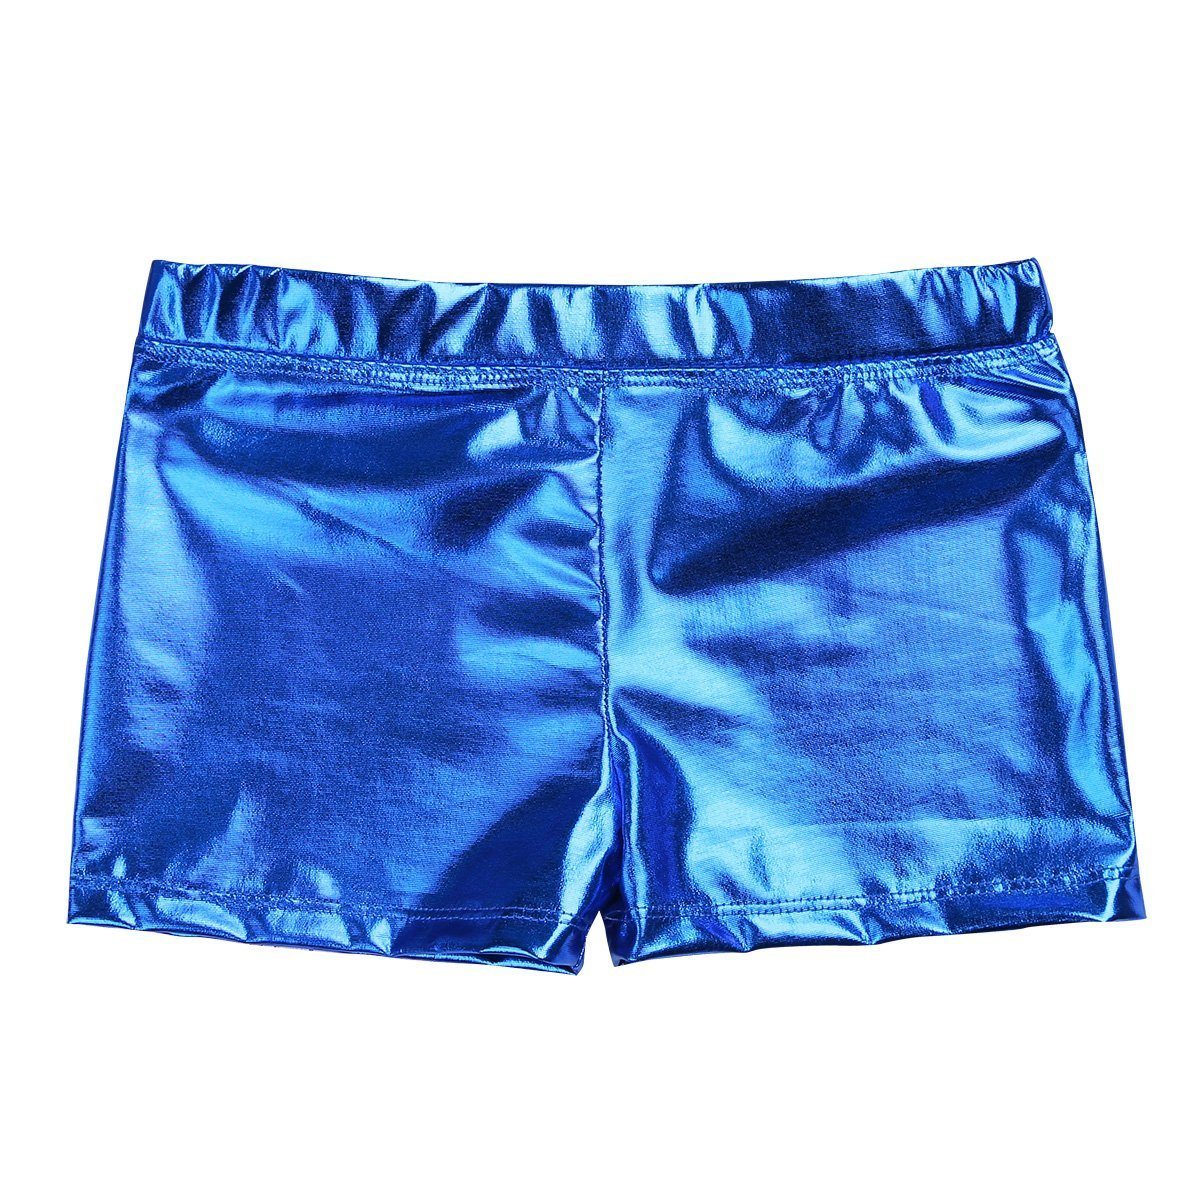 24d727f3e iEFiEL Girls Metallic Gymnastic Dance Shorts Shiny Bottoms Booty ...